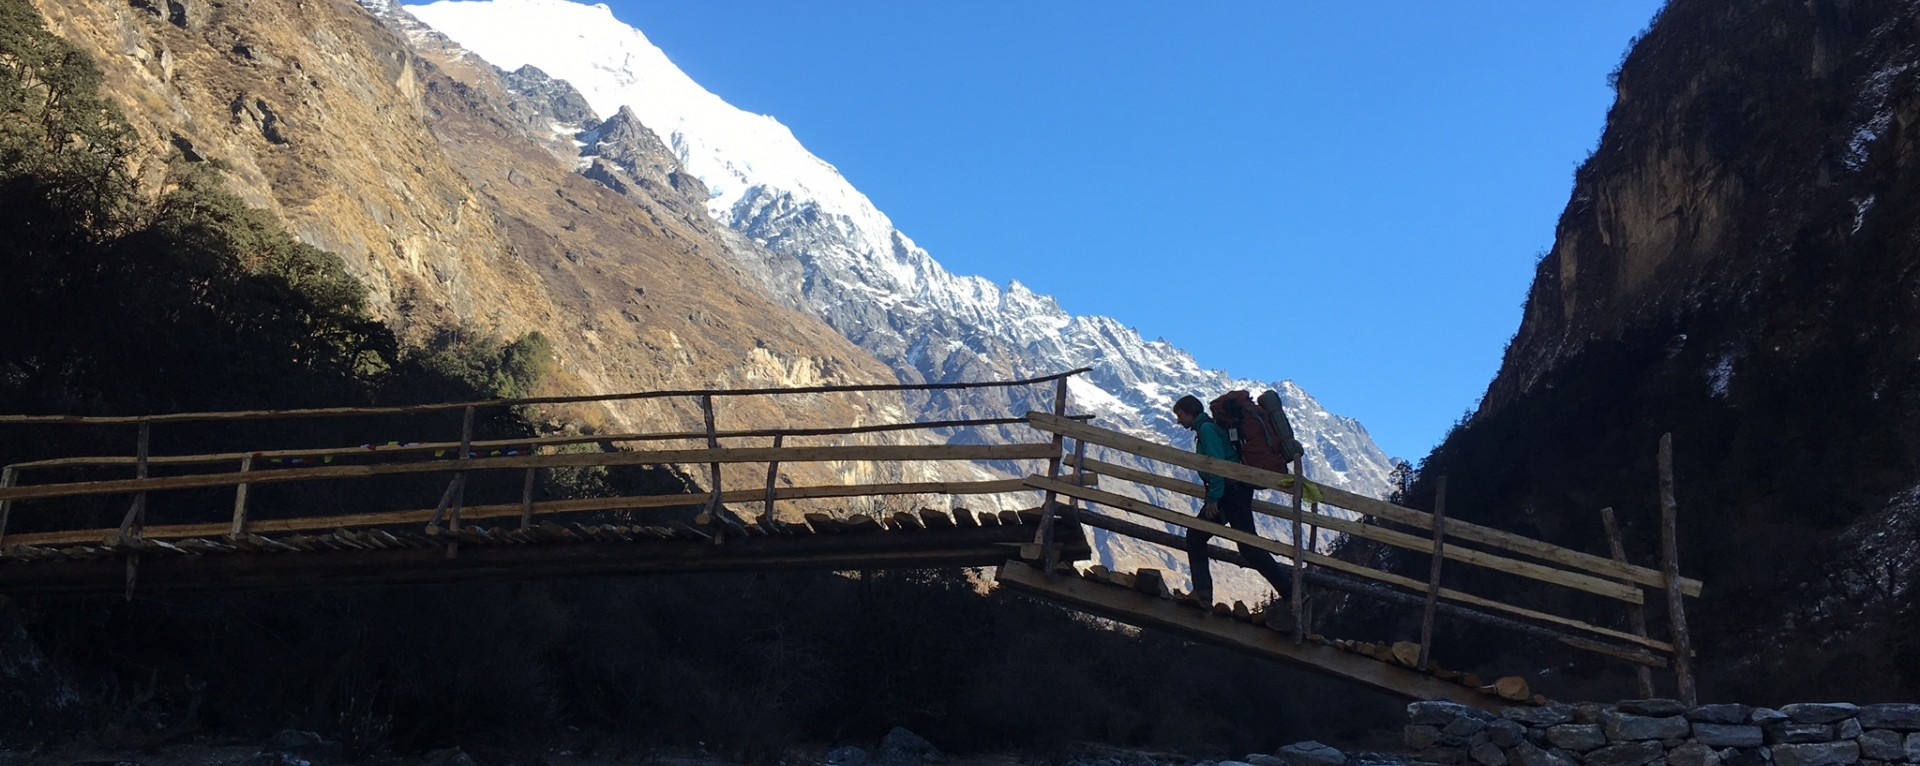 Crossing the wooden bridge over Langtang khola, Langtang , Nepal